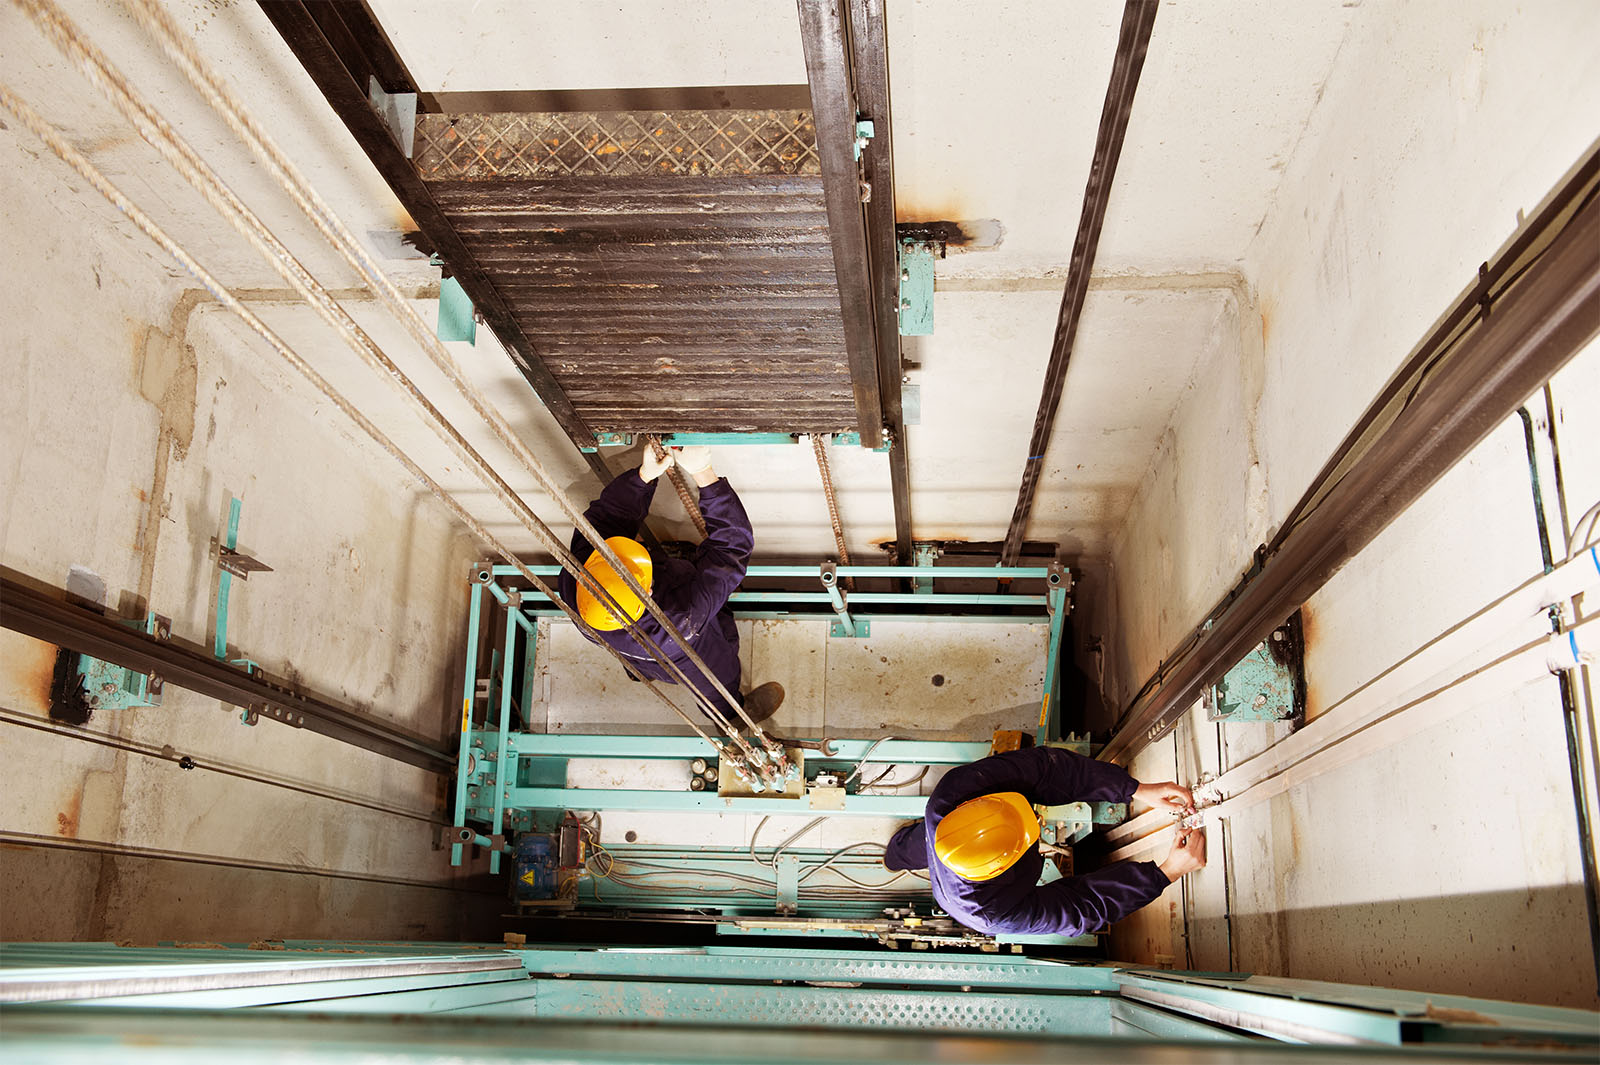 Engineers conducting reactive maintenance in a lift